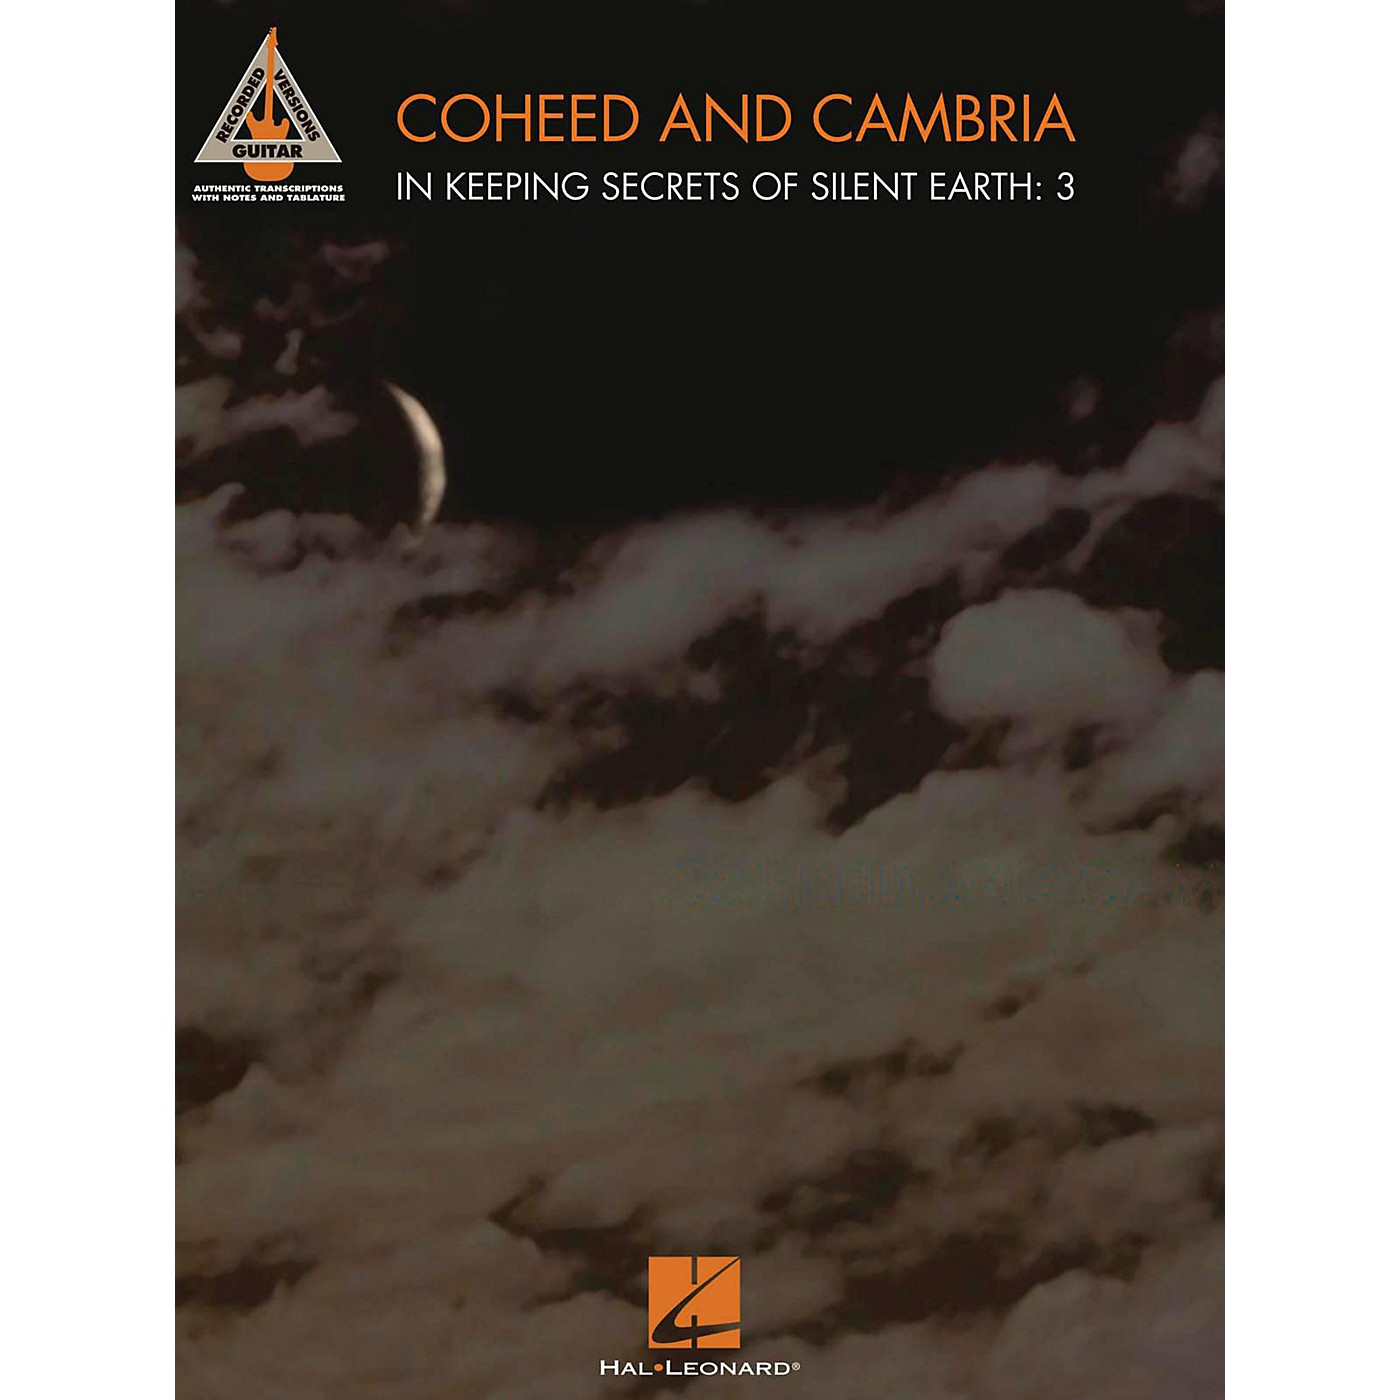 Hal Leonard Coheed And Cambria - In Keeping Secrets Of Silent Earth: 3 Guitar Tab Songbook thumbnail